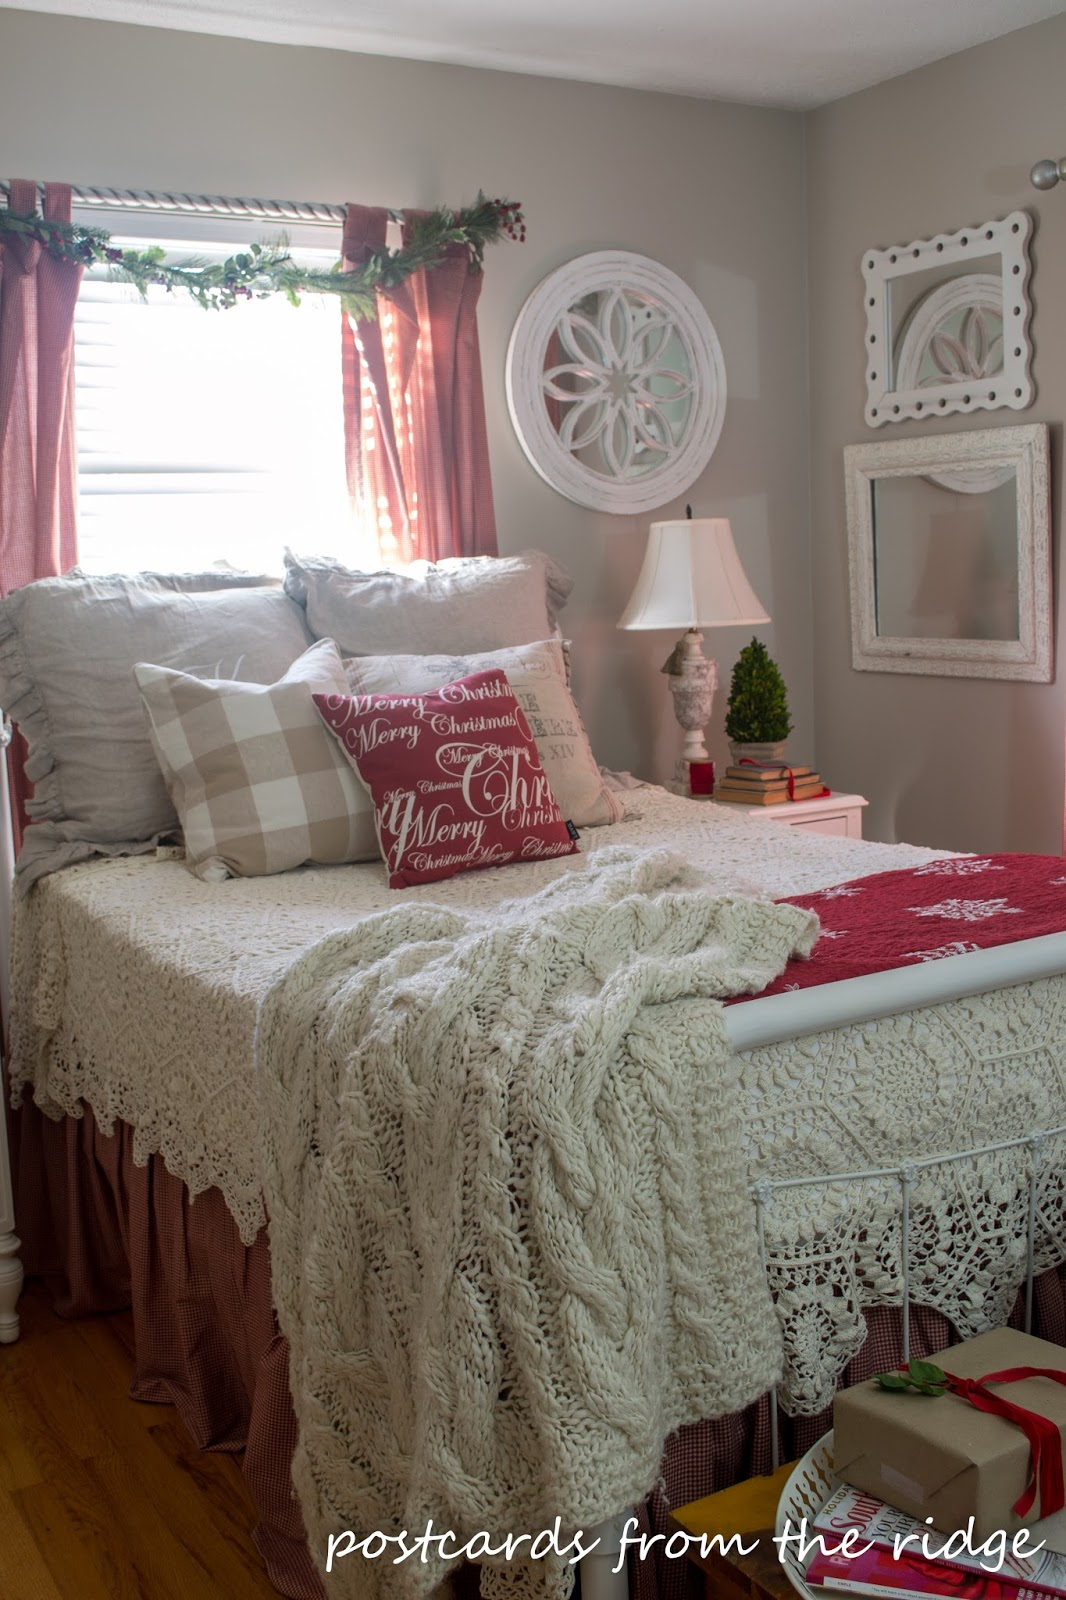 Love this cozy, cottage bedroom decorated for Christmas.